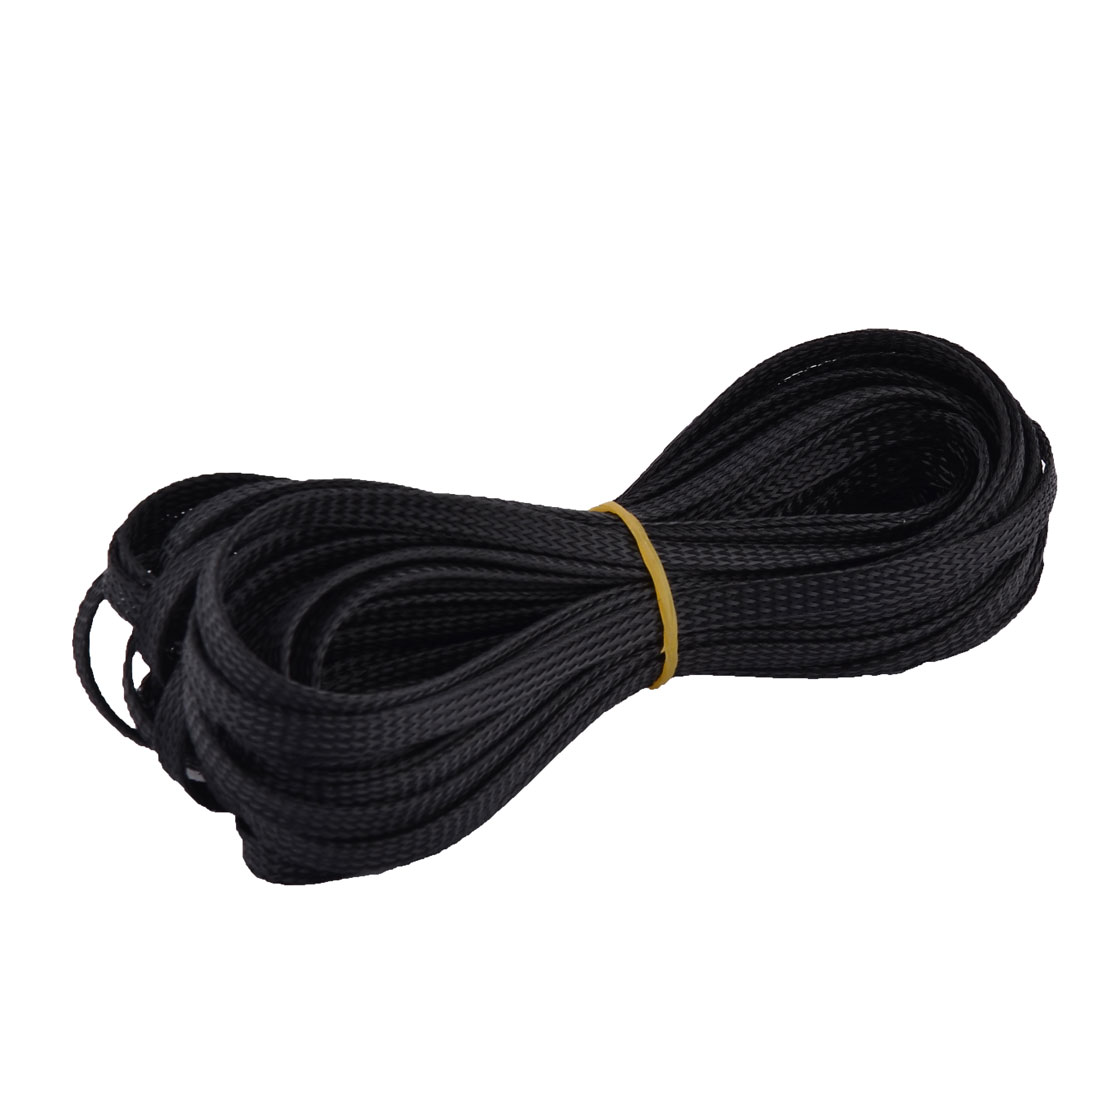 10M Long 6mm Wide Nylon Braided Elastic Expandable Sleeving Wire Cable Harness Black